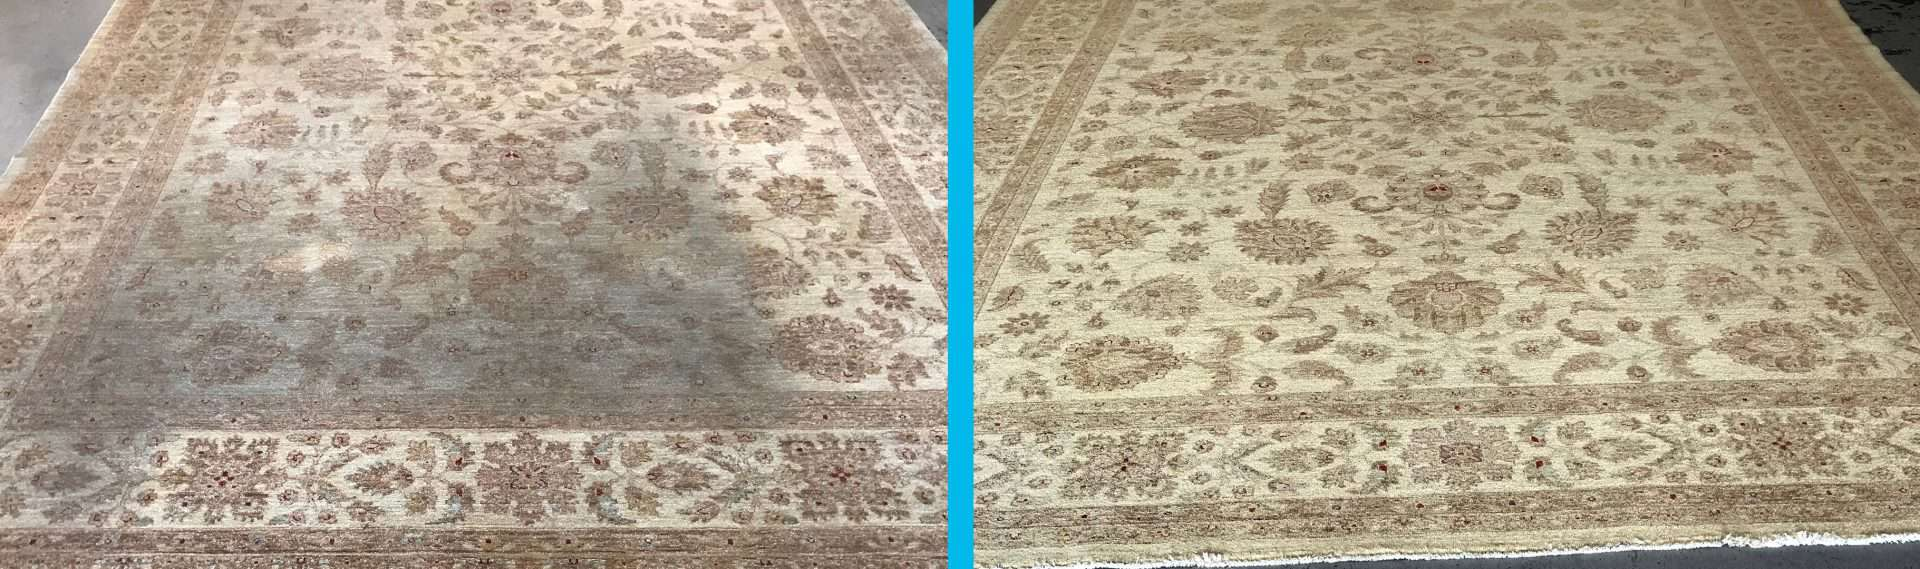 Oriental Rug Cleaning Los Angeles Babash Rug Services